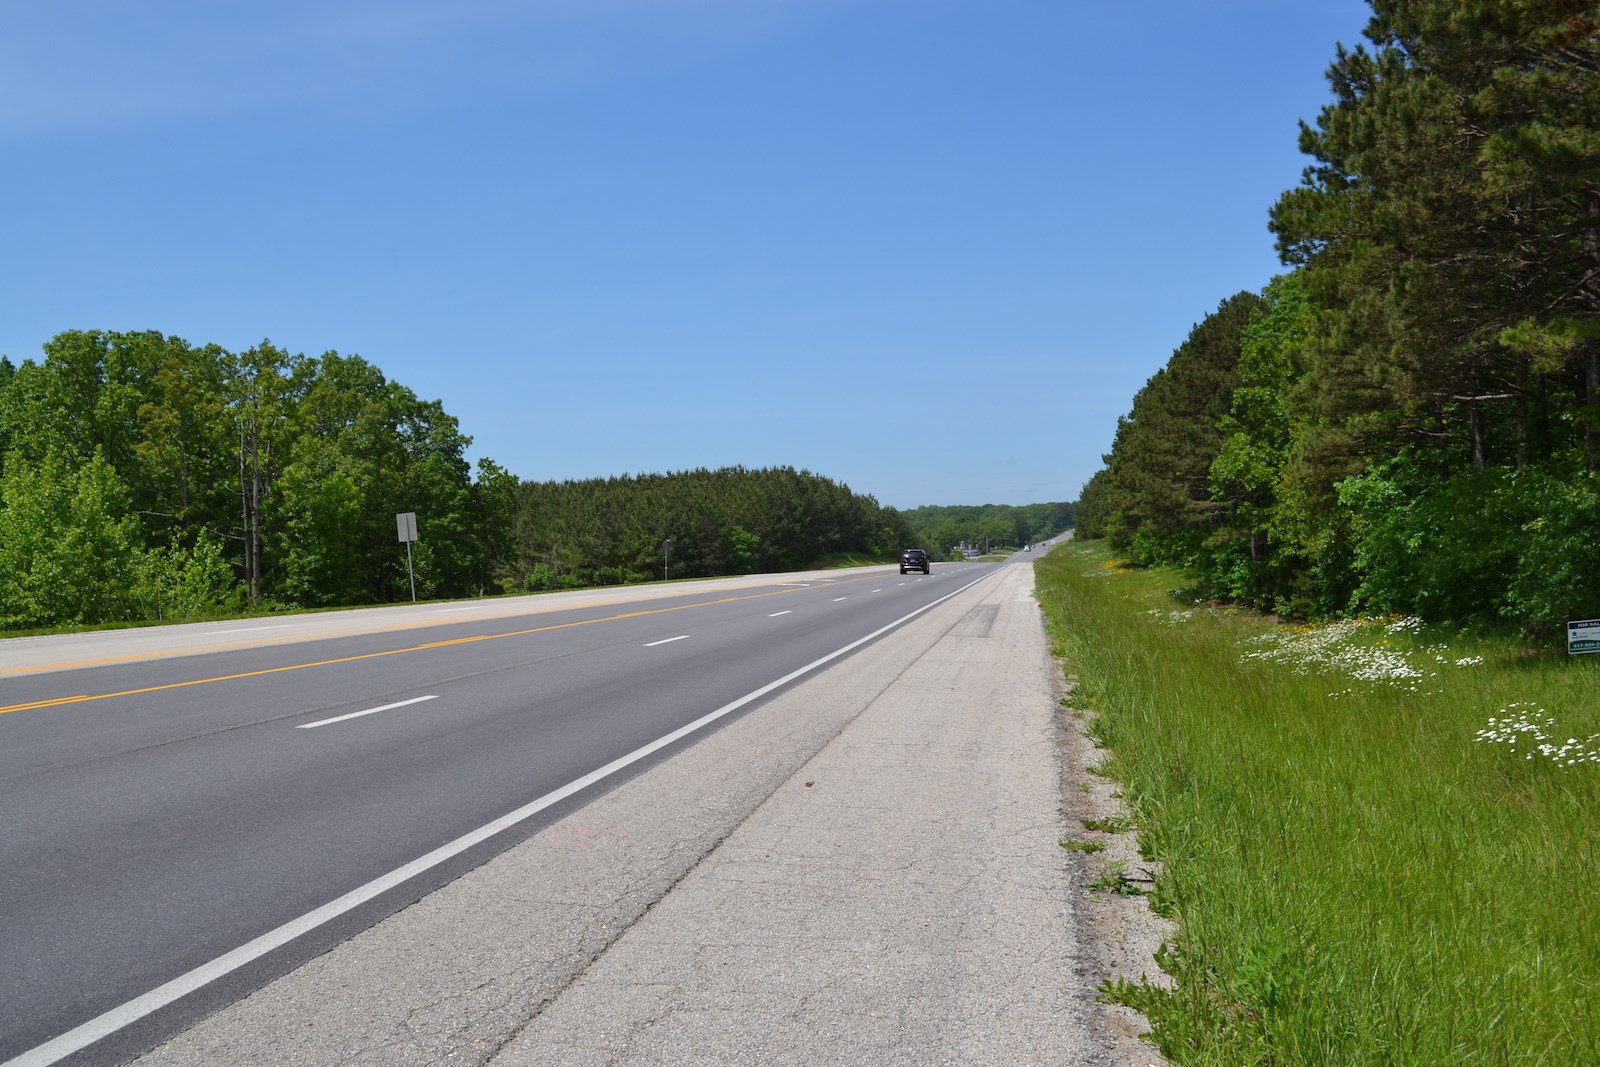 Land for Sale - US Highway Frontage and Access